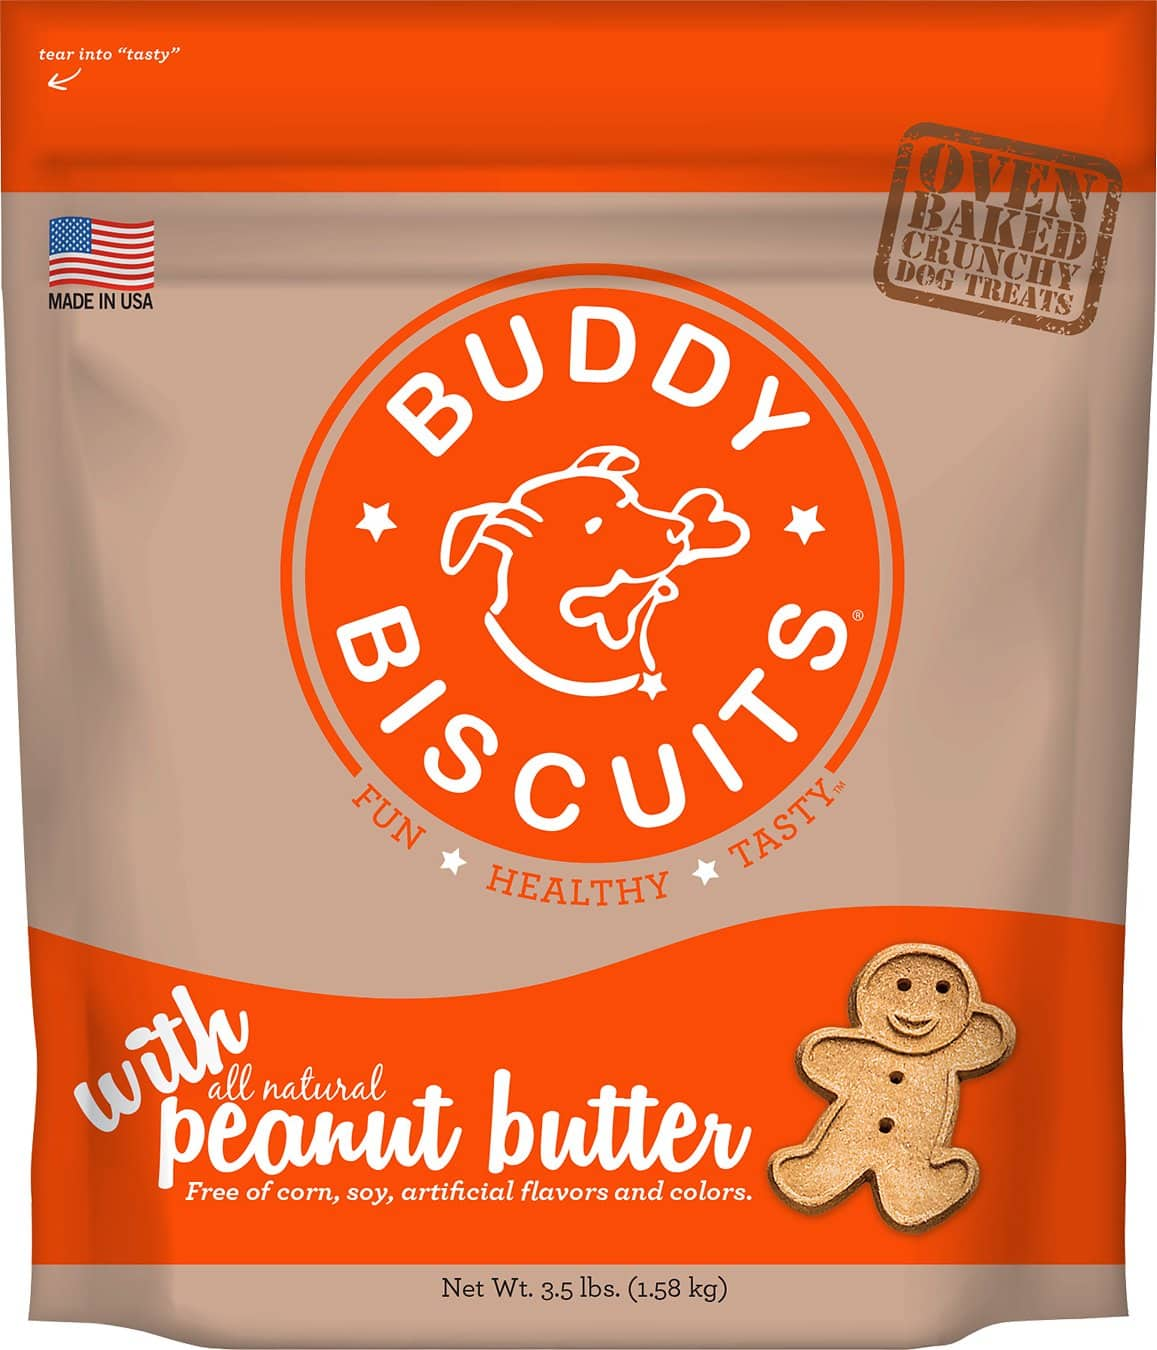 Buddy Biscuits Original Oven Baked with Peanut Butter Dog Treats - 3.5lbs $3.45